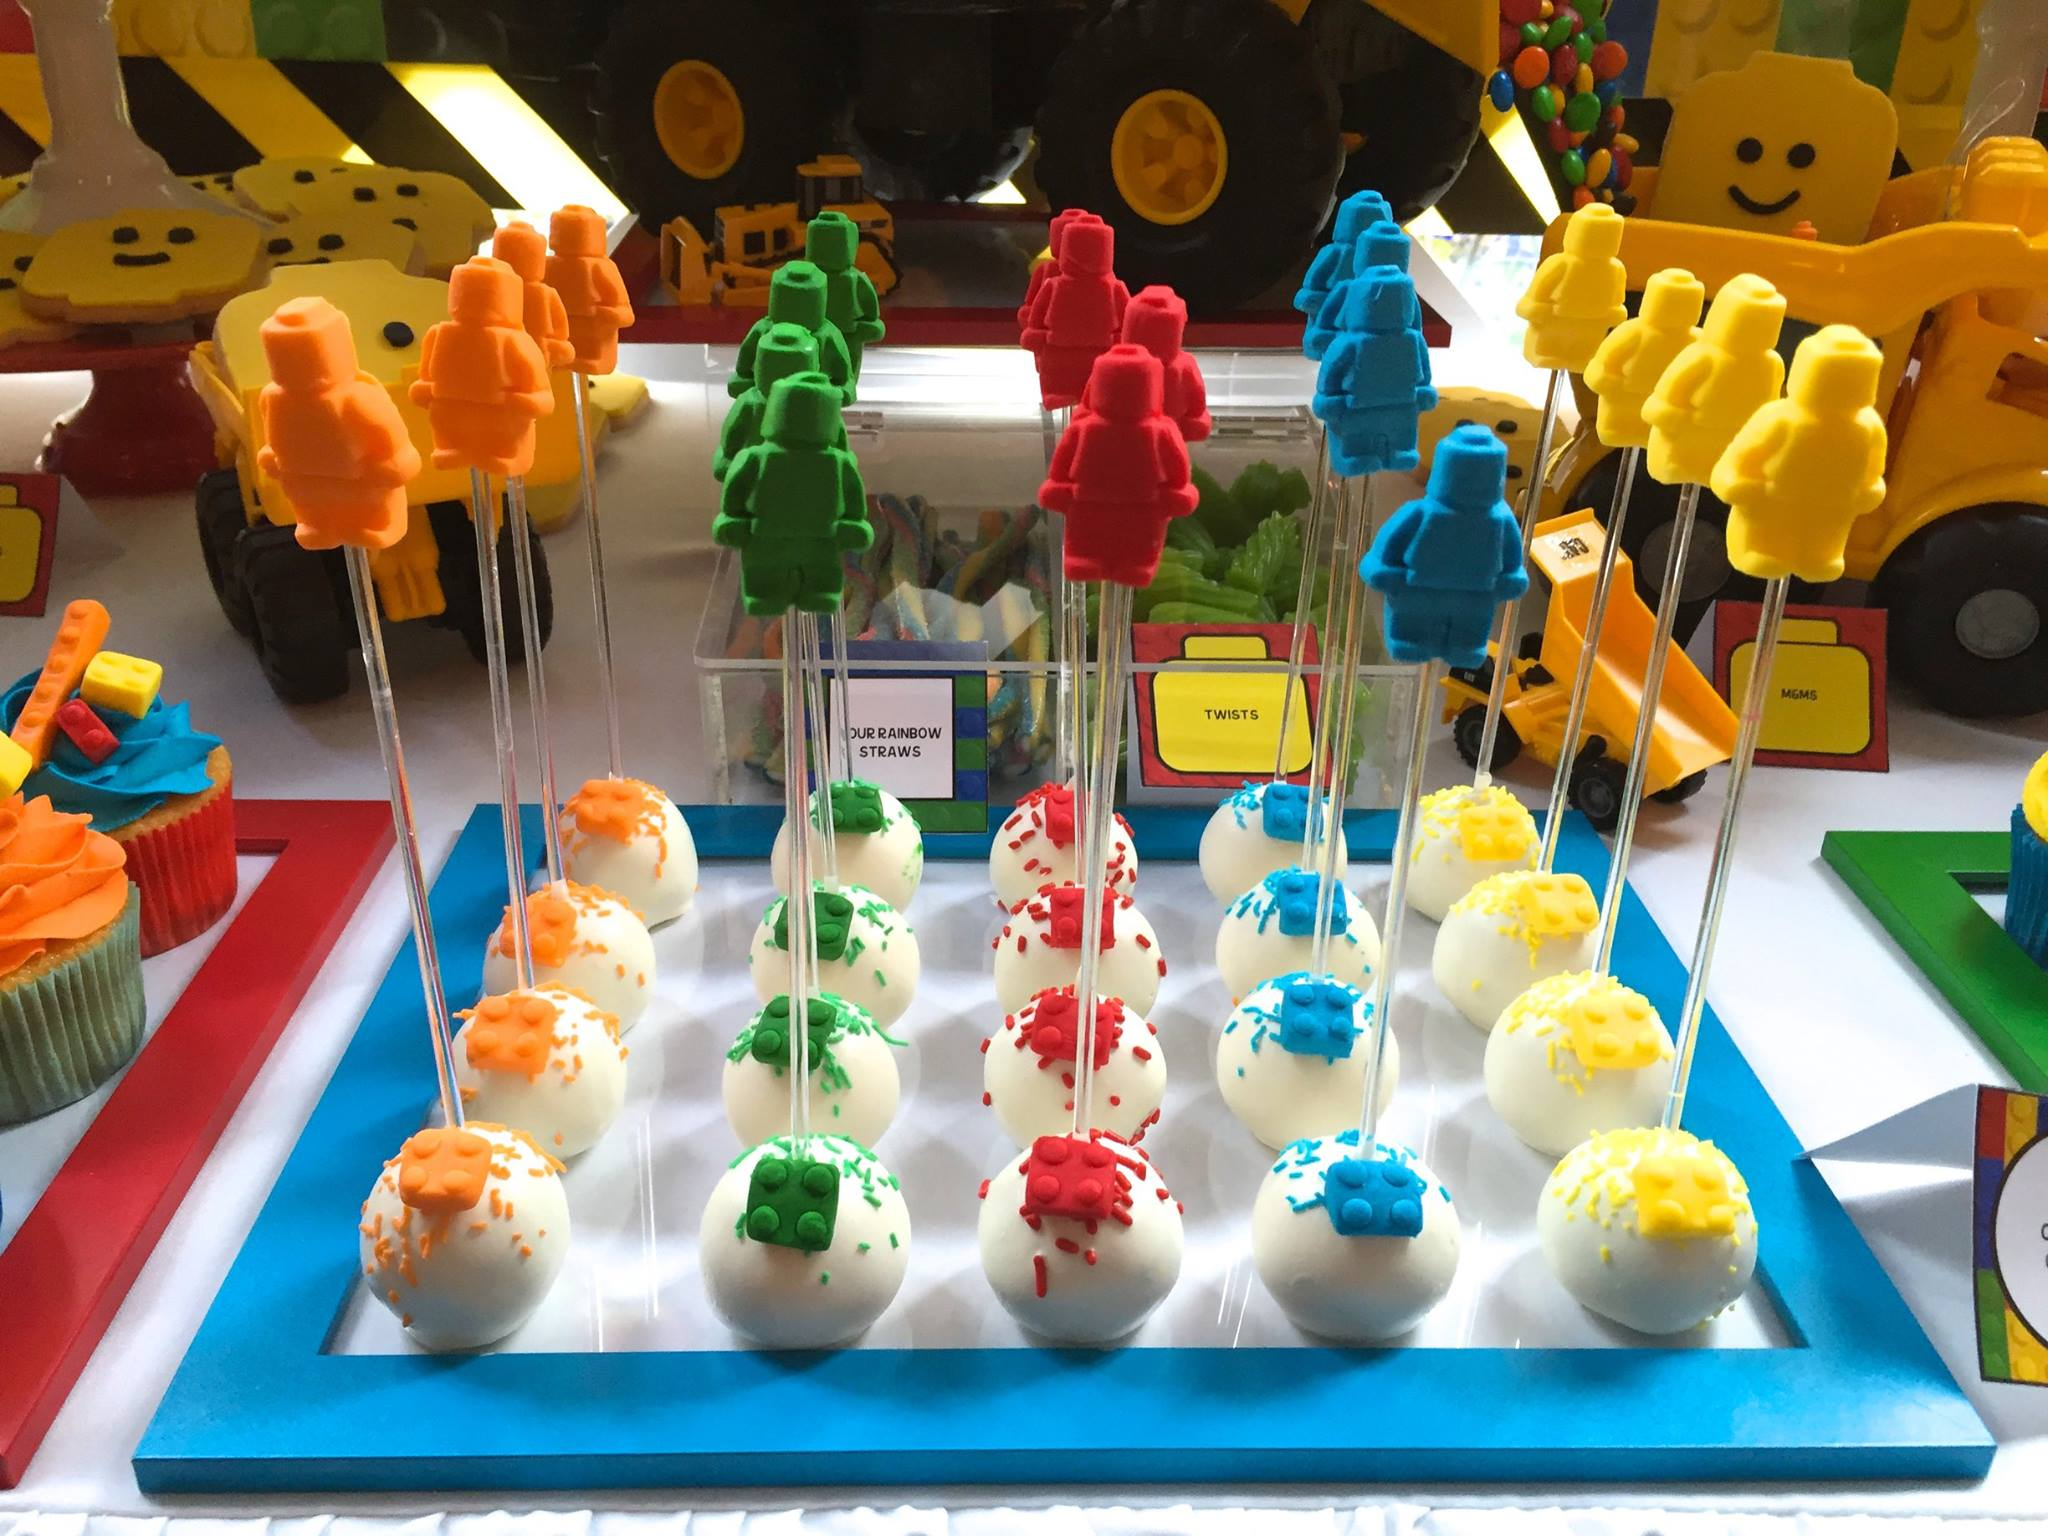 Lego cake pops - Bites By D (Perth)